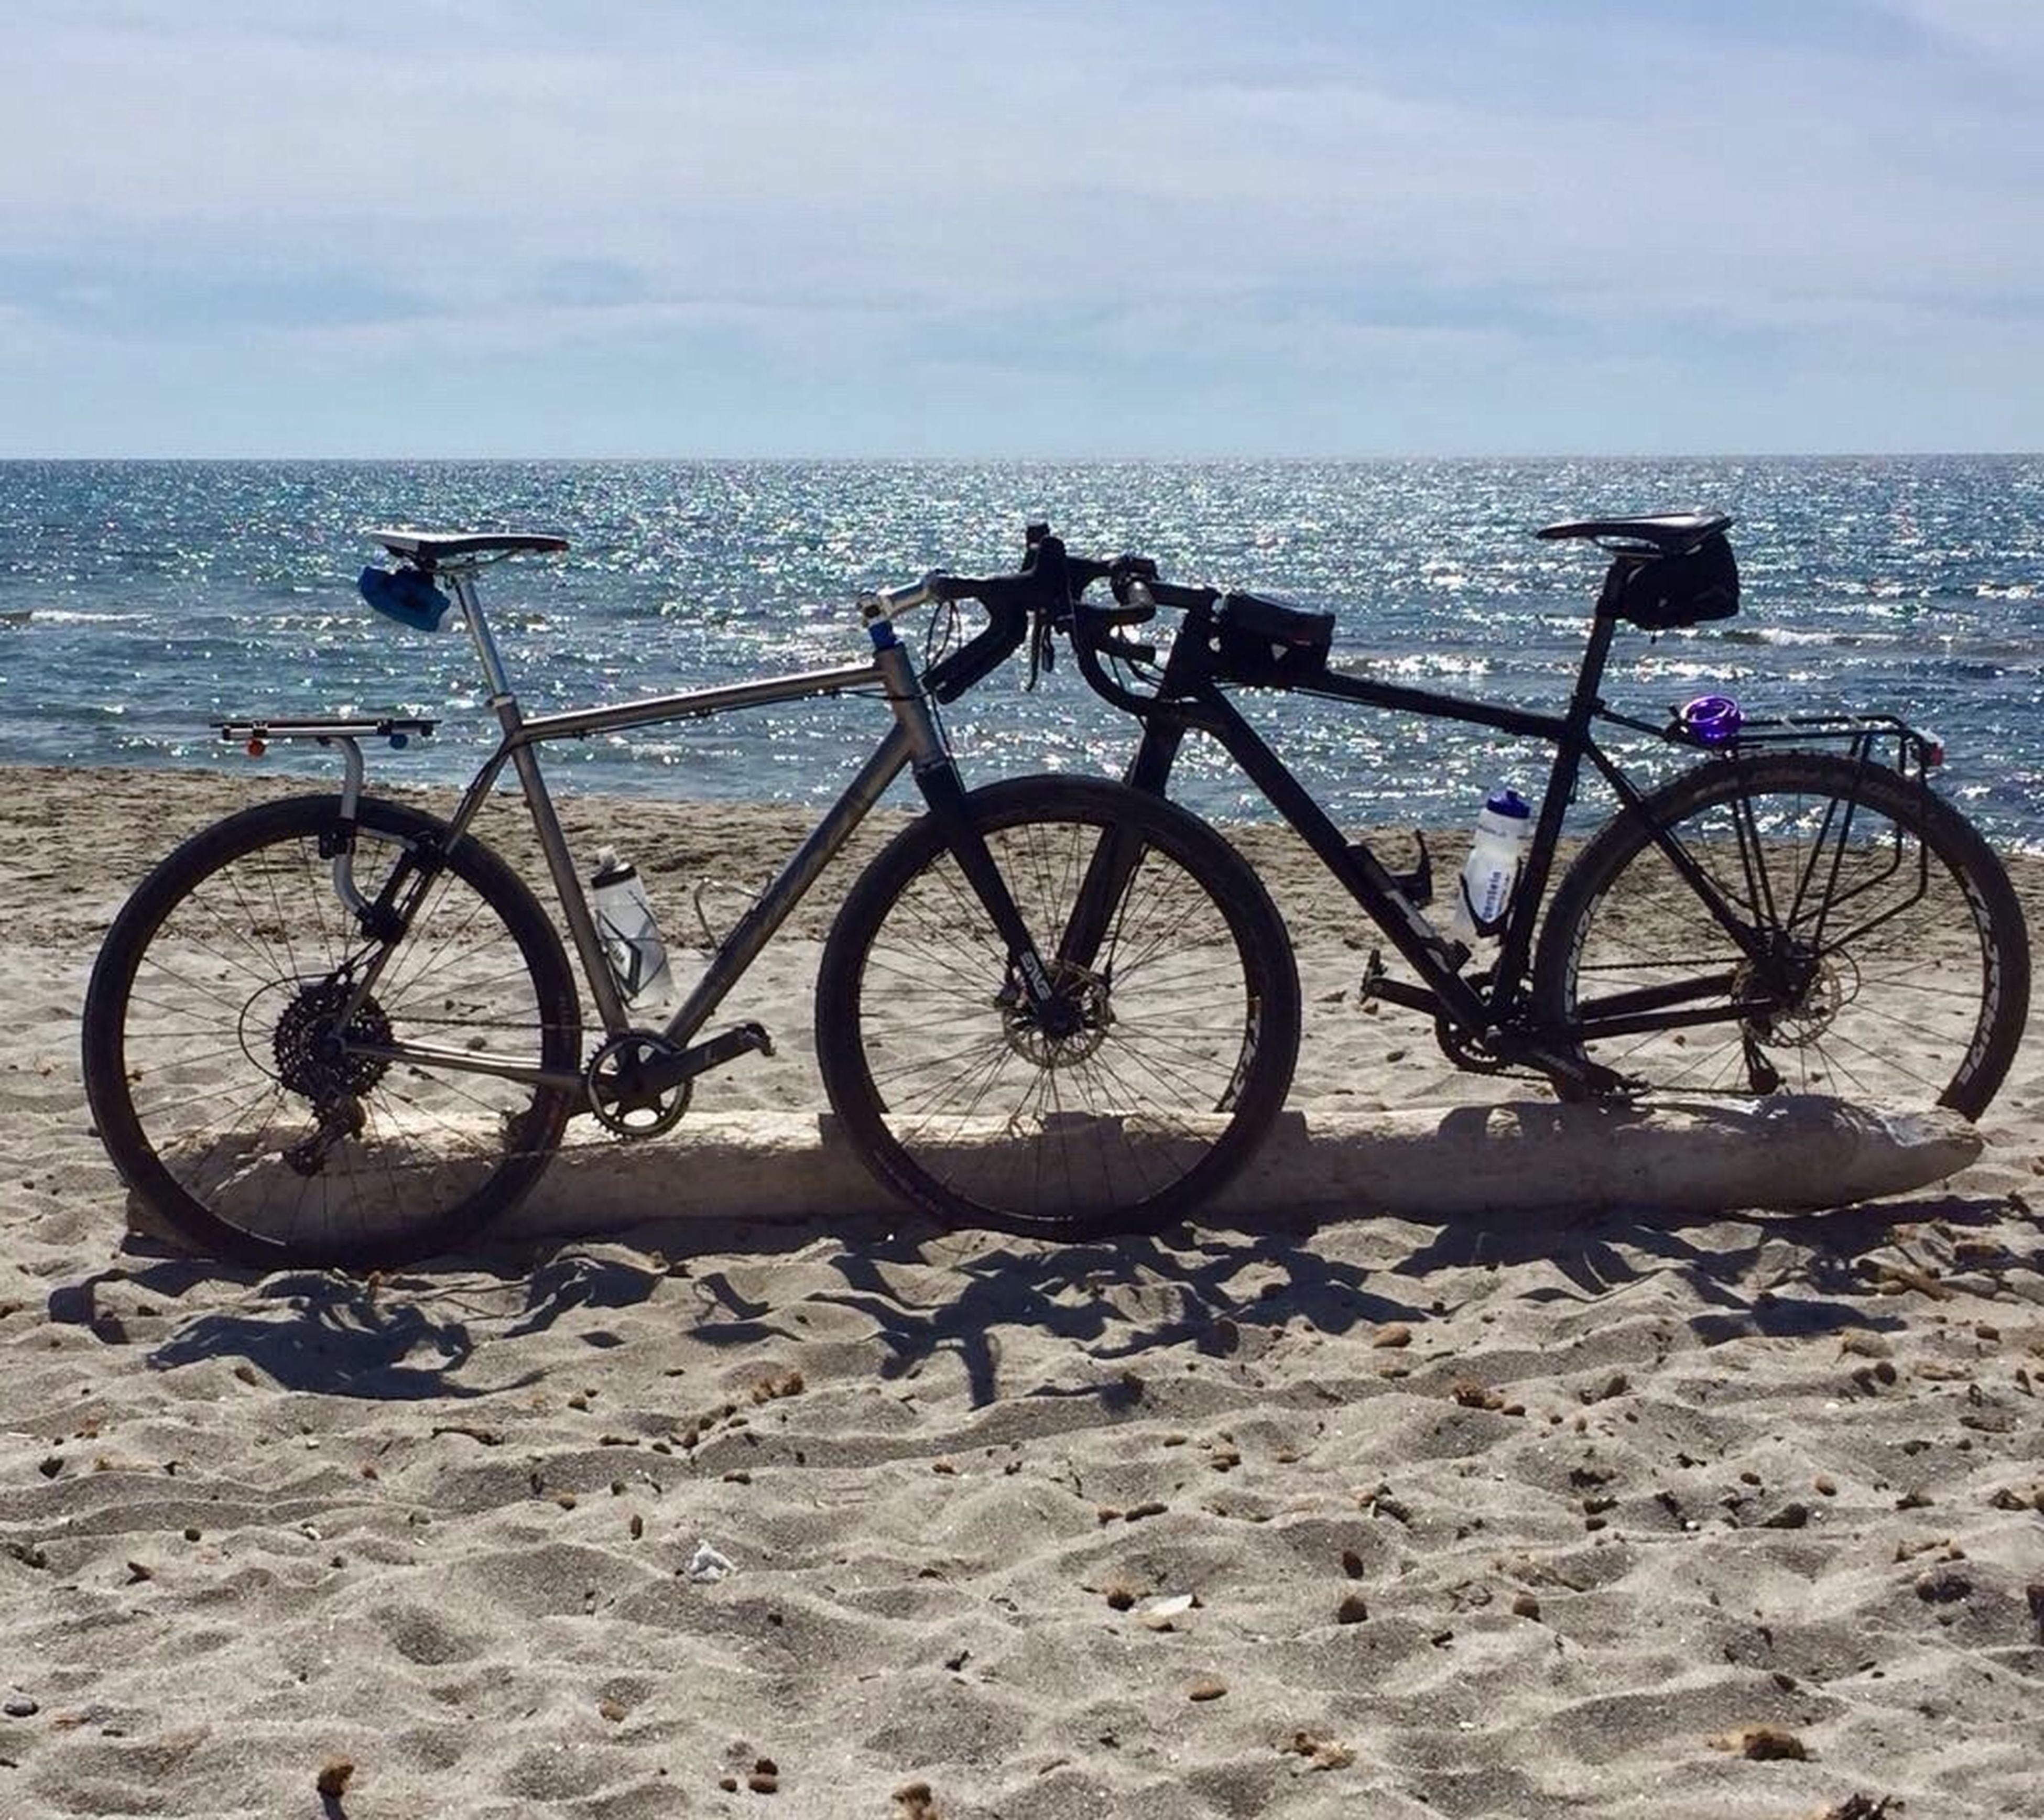 sea, water, horizon over water, outdoors, bicycle, transportation, day, no people, sky, beauty in nature, nature